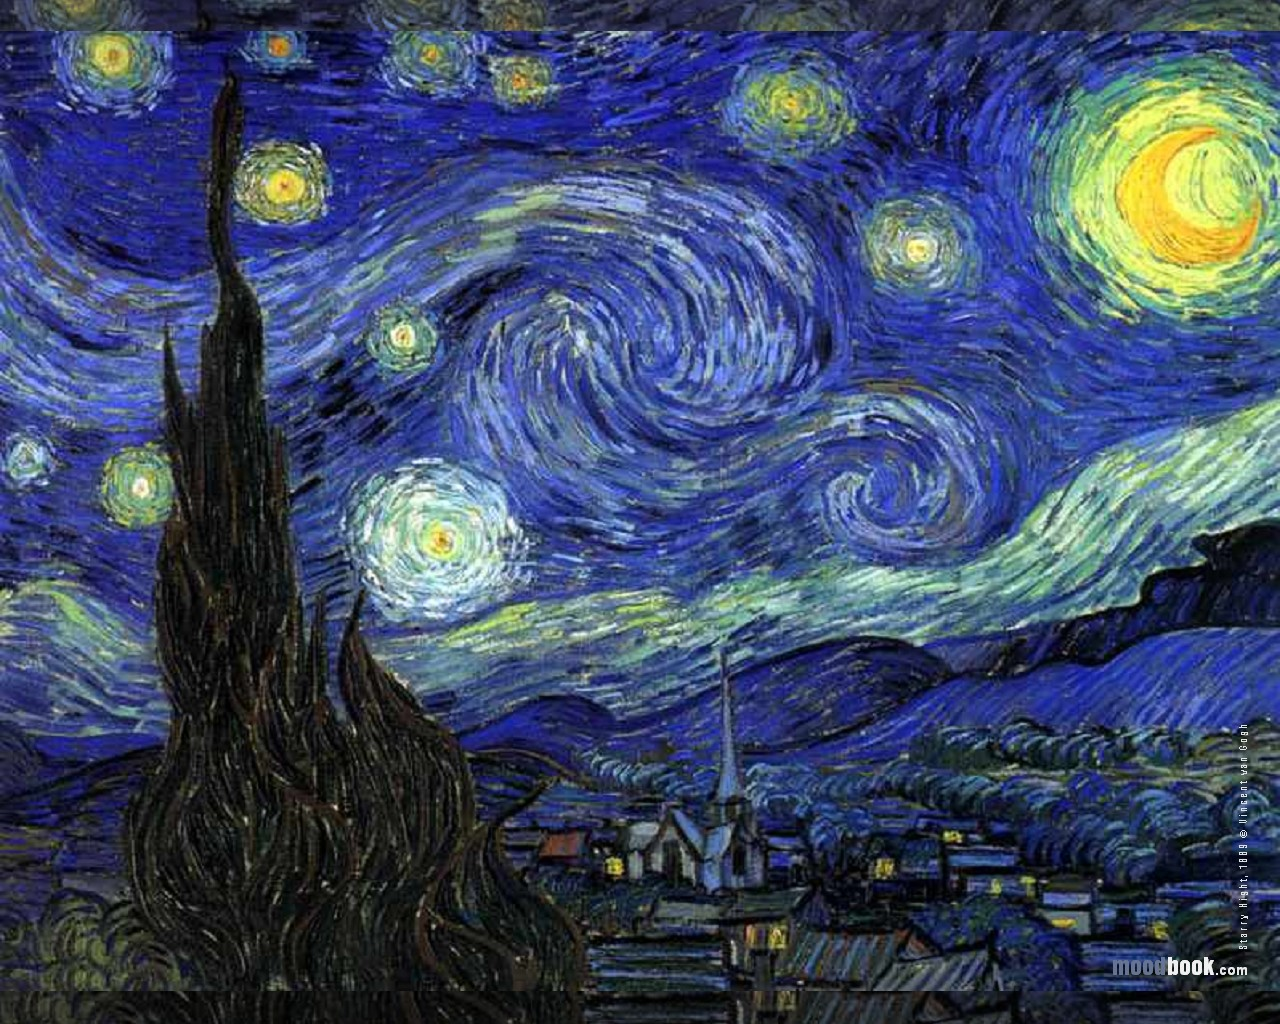 Any Given Day The Starry Night By Vincent Van Gogh